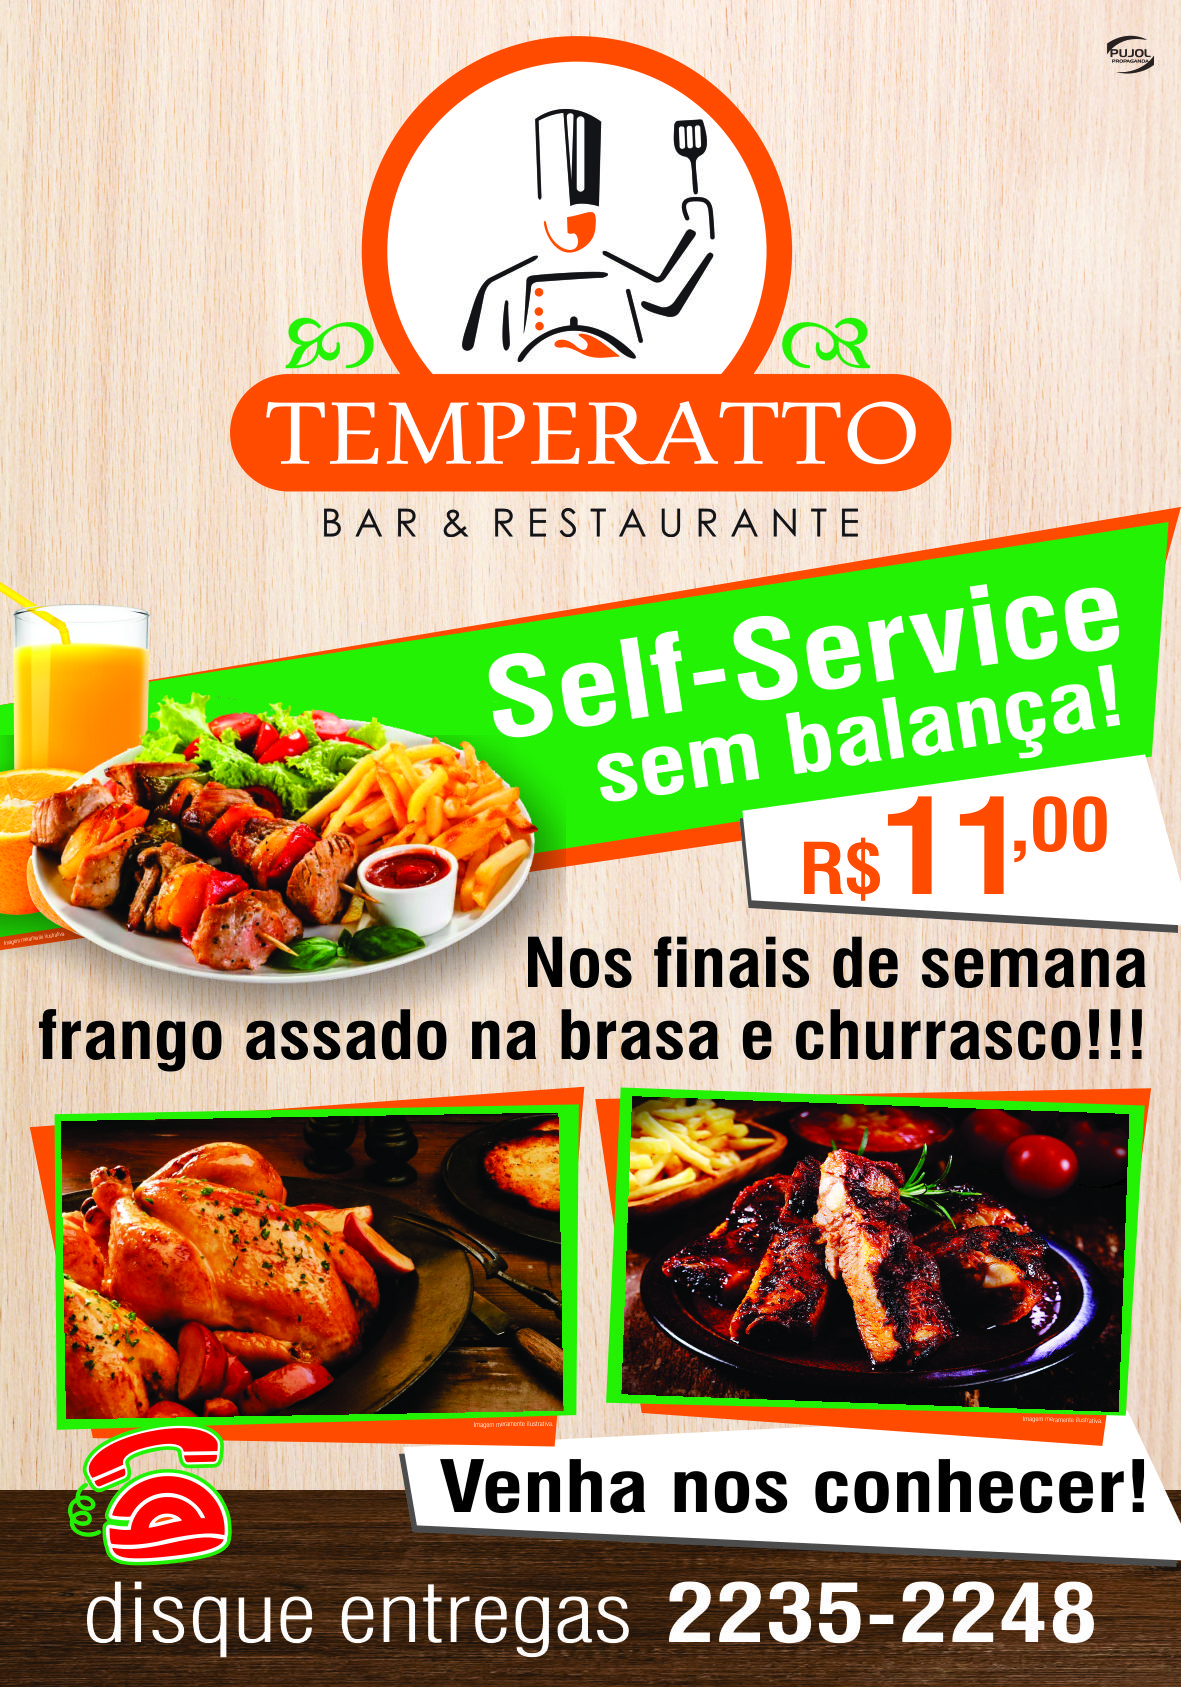 #51229 01 - Temperatto Banner.jpg